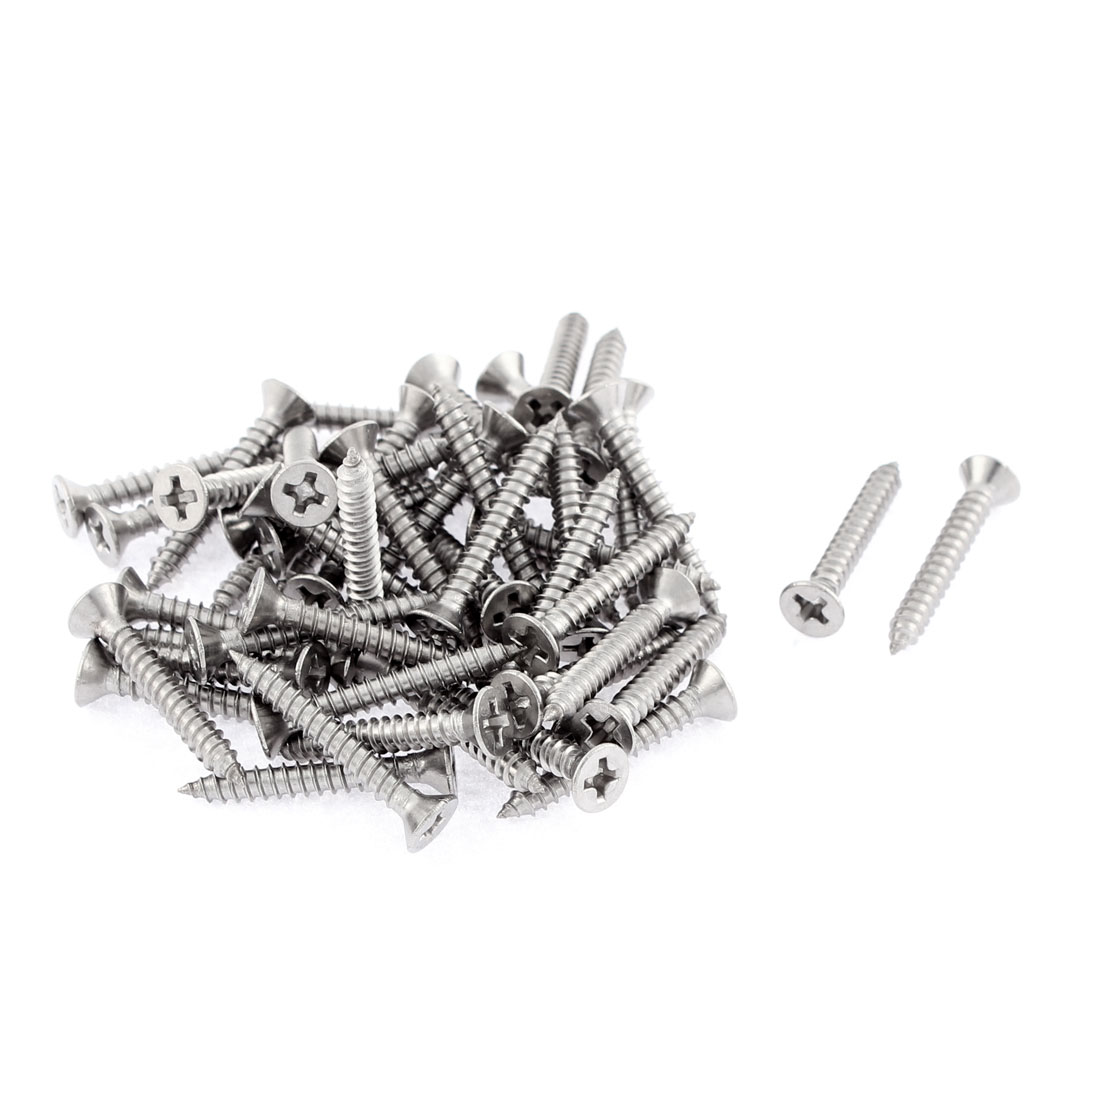 50 Pcs 3.5mmx25mm Stainless Steel Phillips Flat Head Sheet Self Tapping Screws